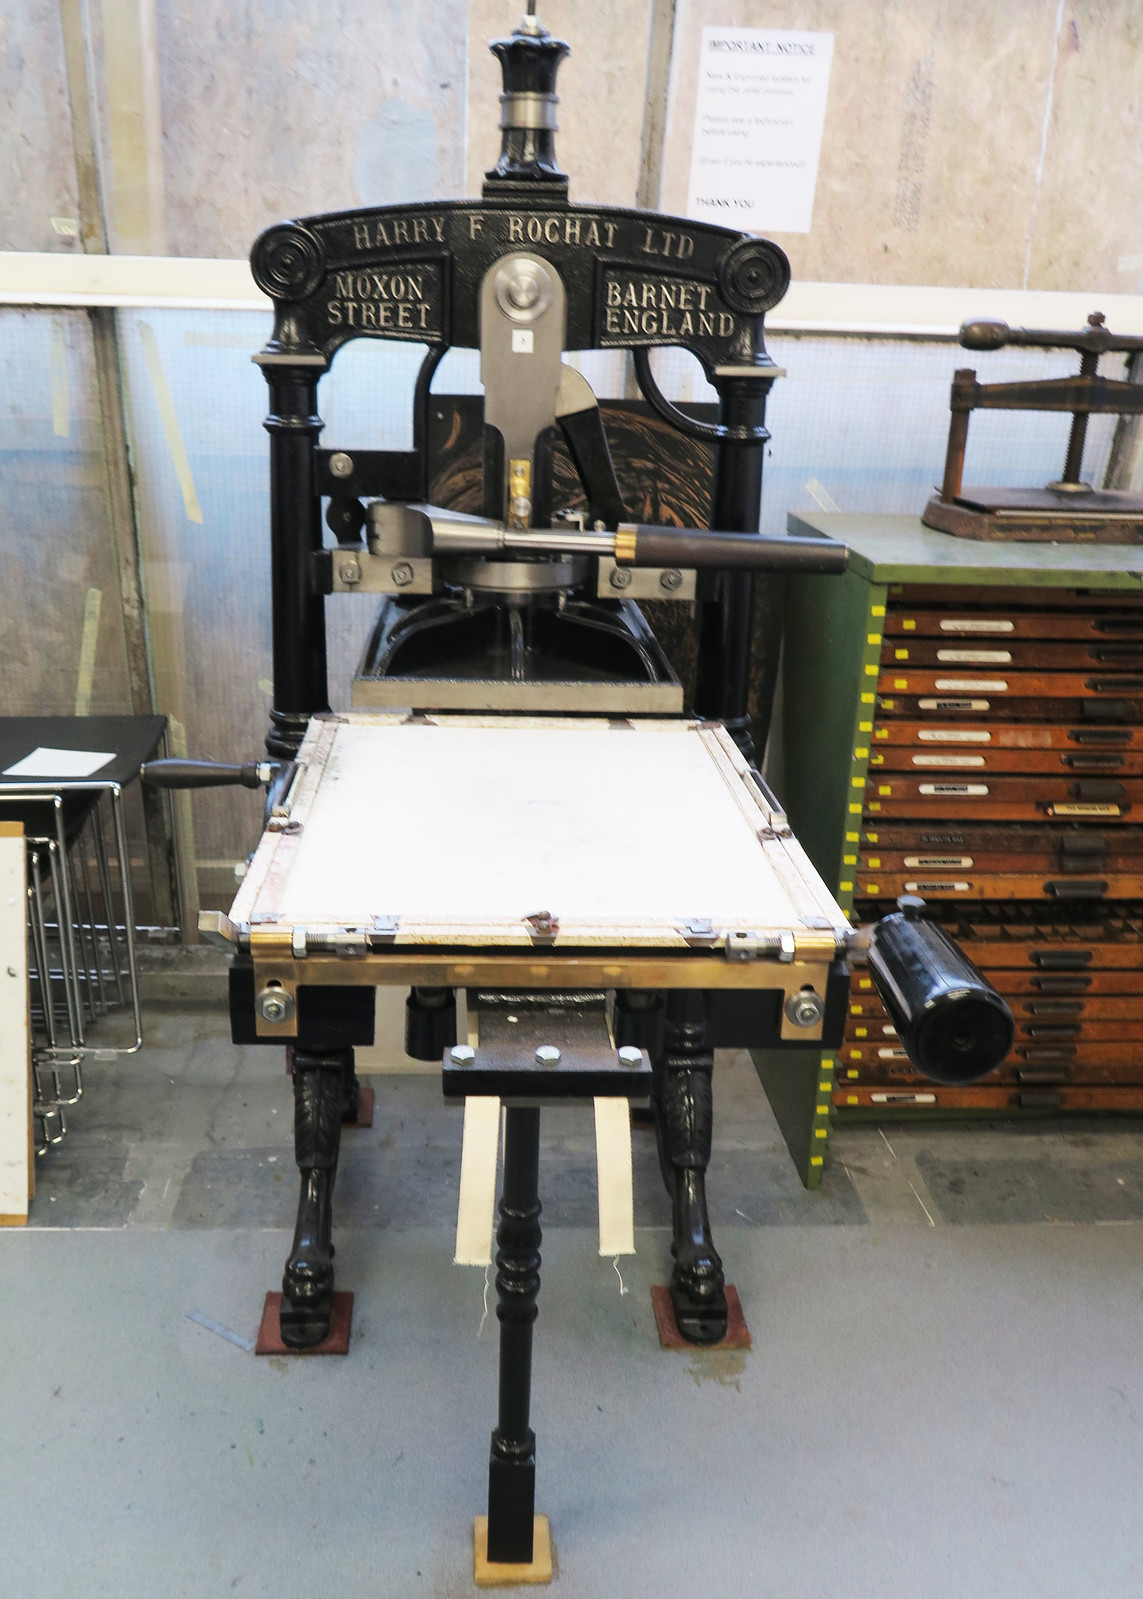 Beautiful old printing press